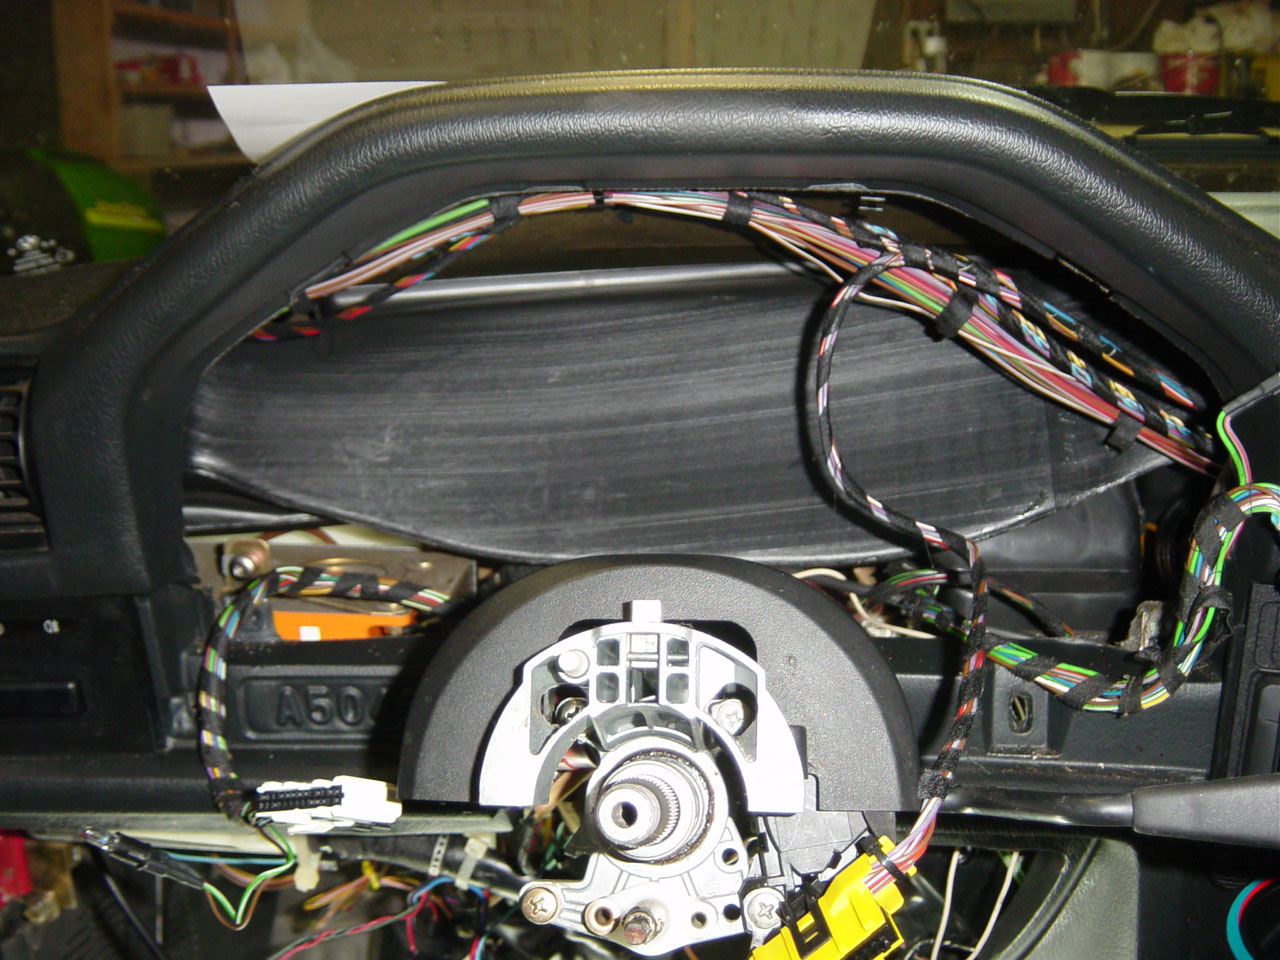 1991 Bmw 318i E30 M42 On Board Computer Obc Retrofit By Michael Wiring Diagram This Is Your Mini Harness You Can Trace It Both Ways To Go The And Door Chime